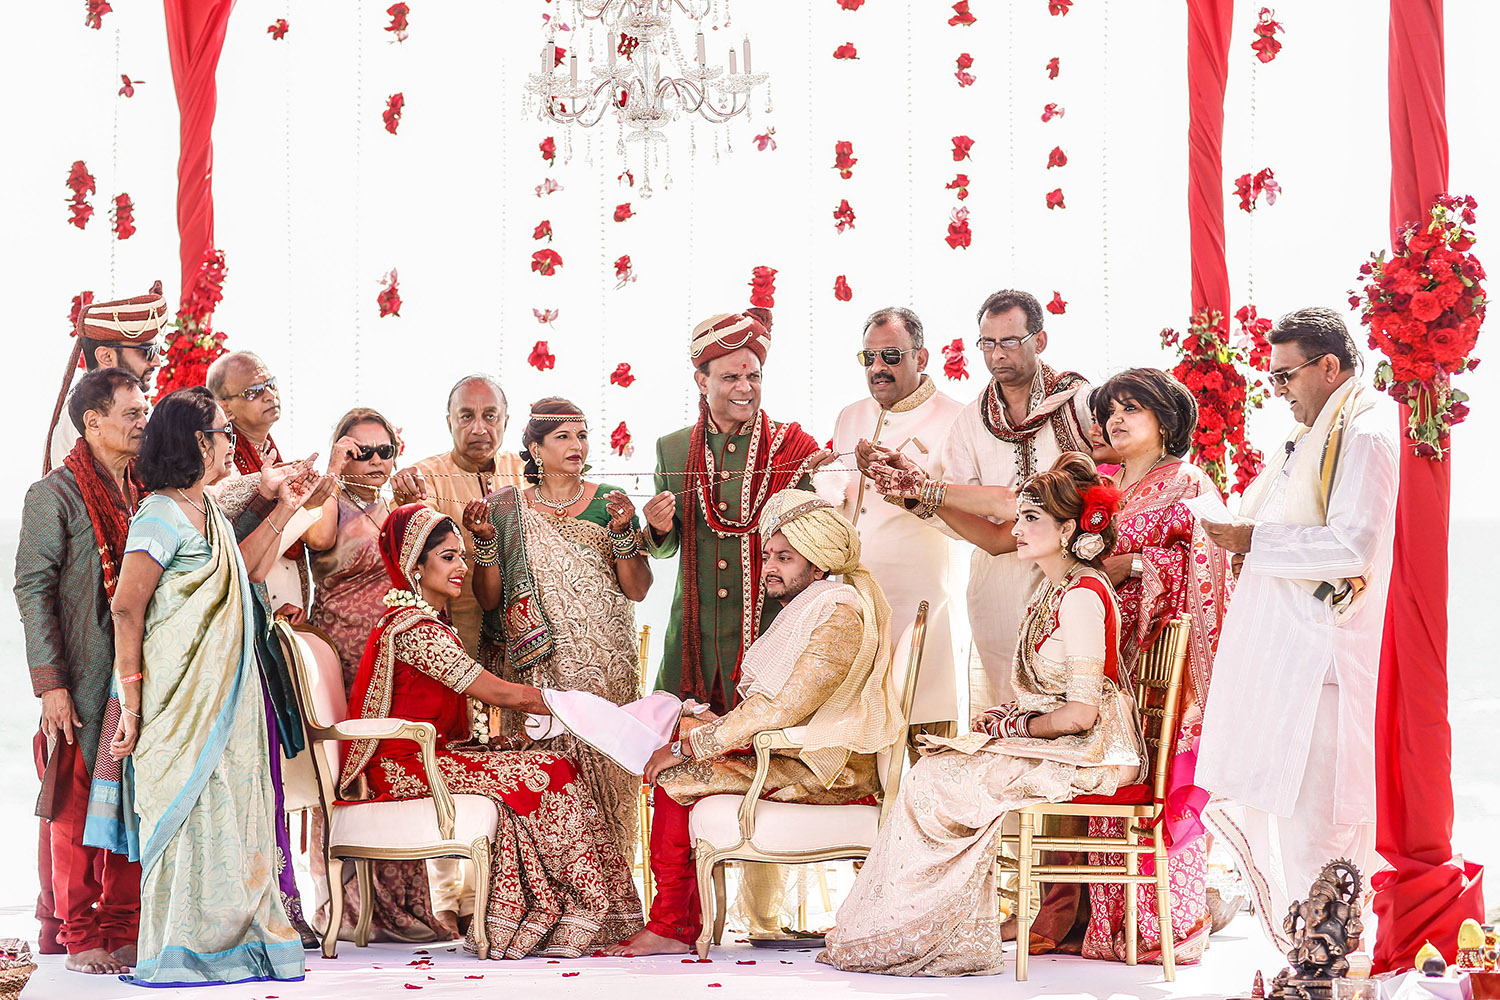 traditions-indian-south-asian-wedding-planner-chicago-top-rated-engaging-events-by-ali-10twelve